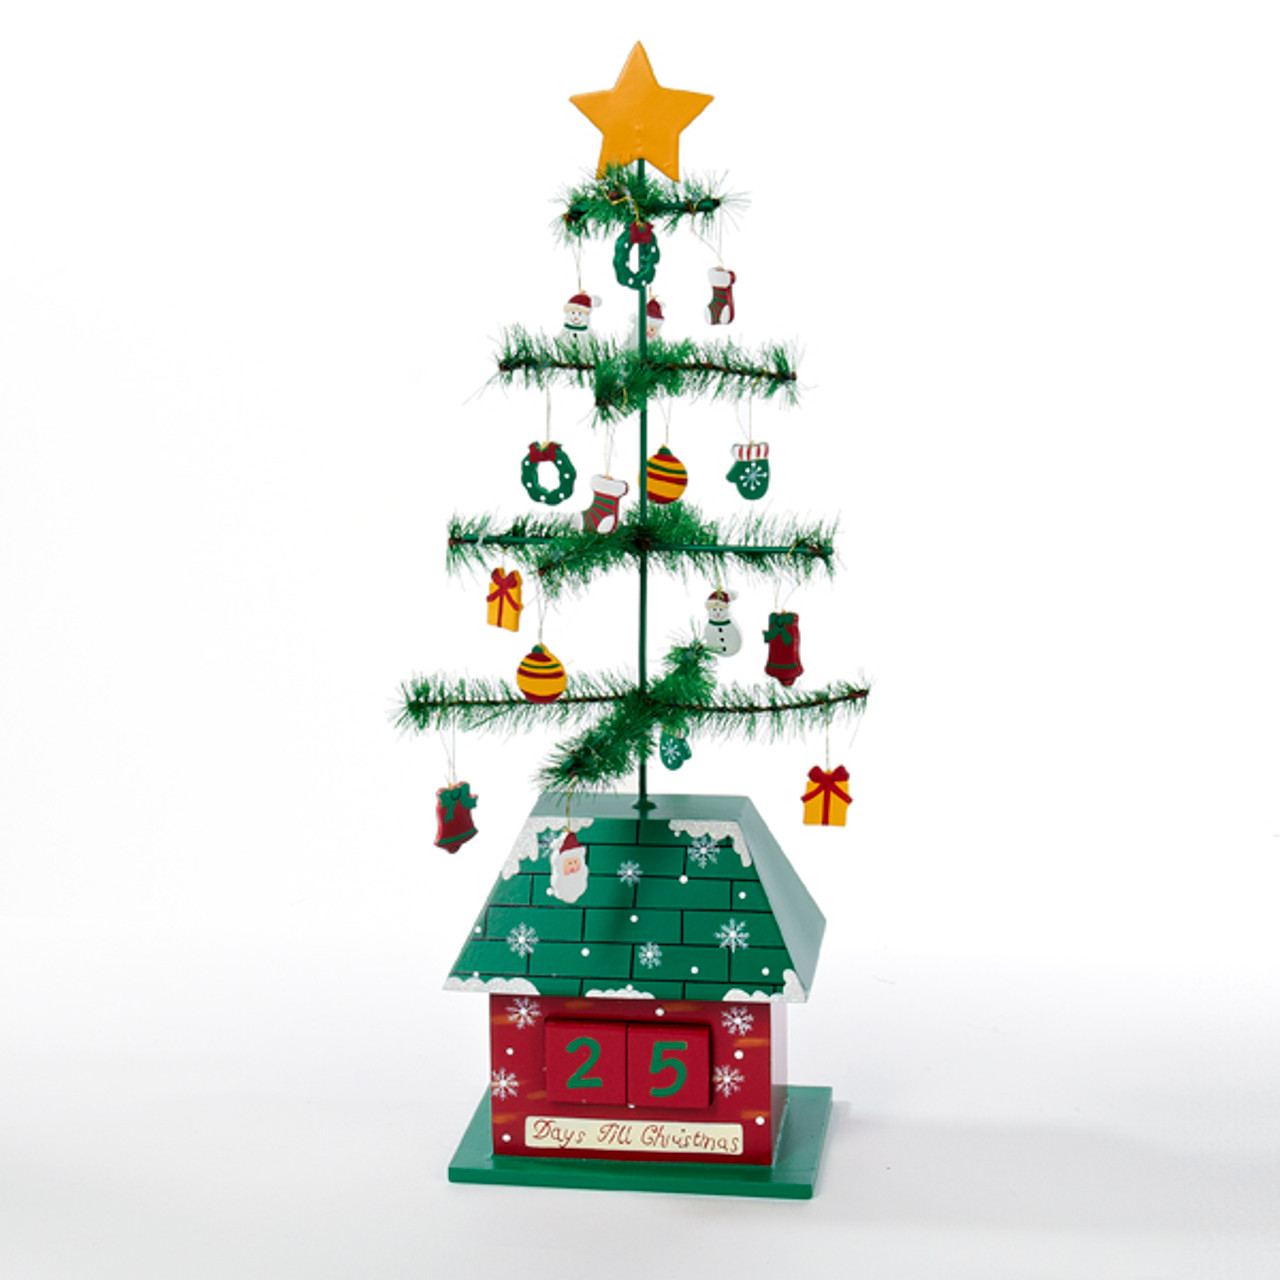 17 green and red christmas tree with ornaments days till christmas calendar 31736723 - Miniature Christmas Decorations